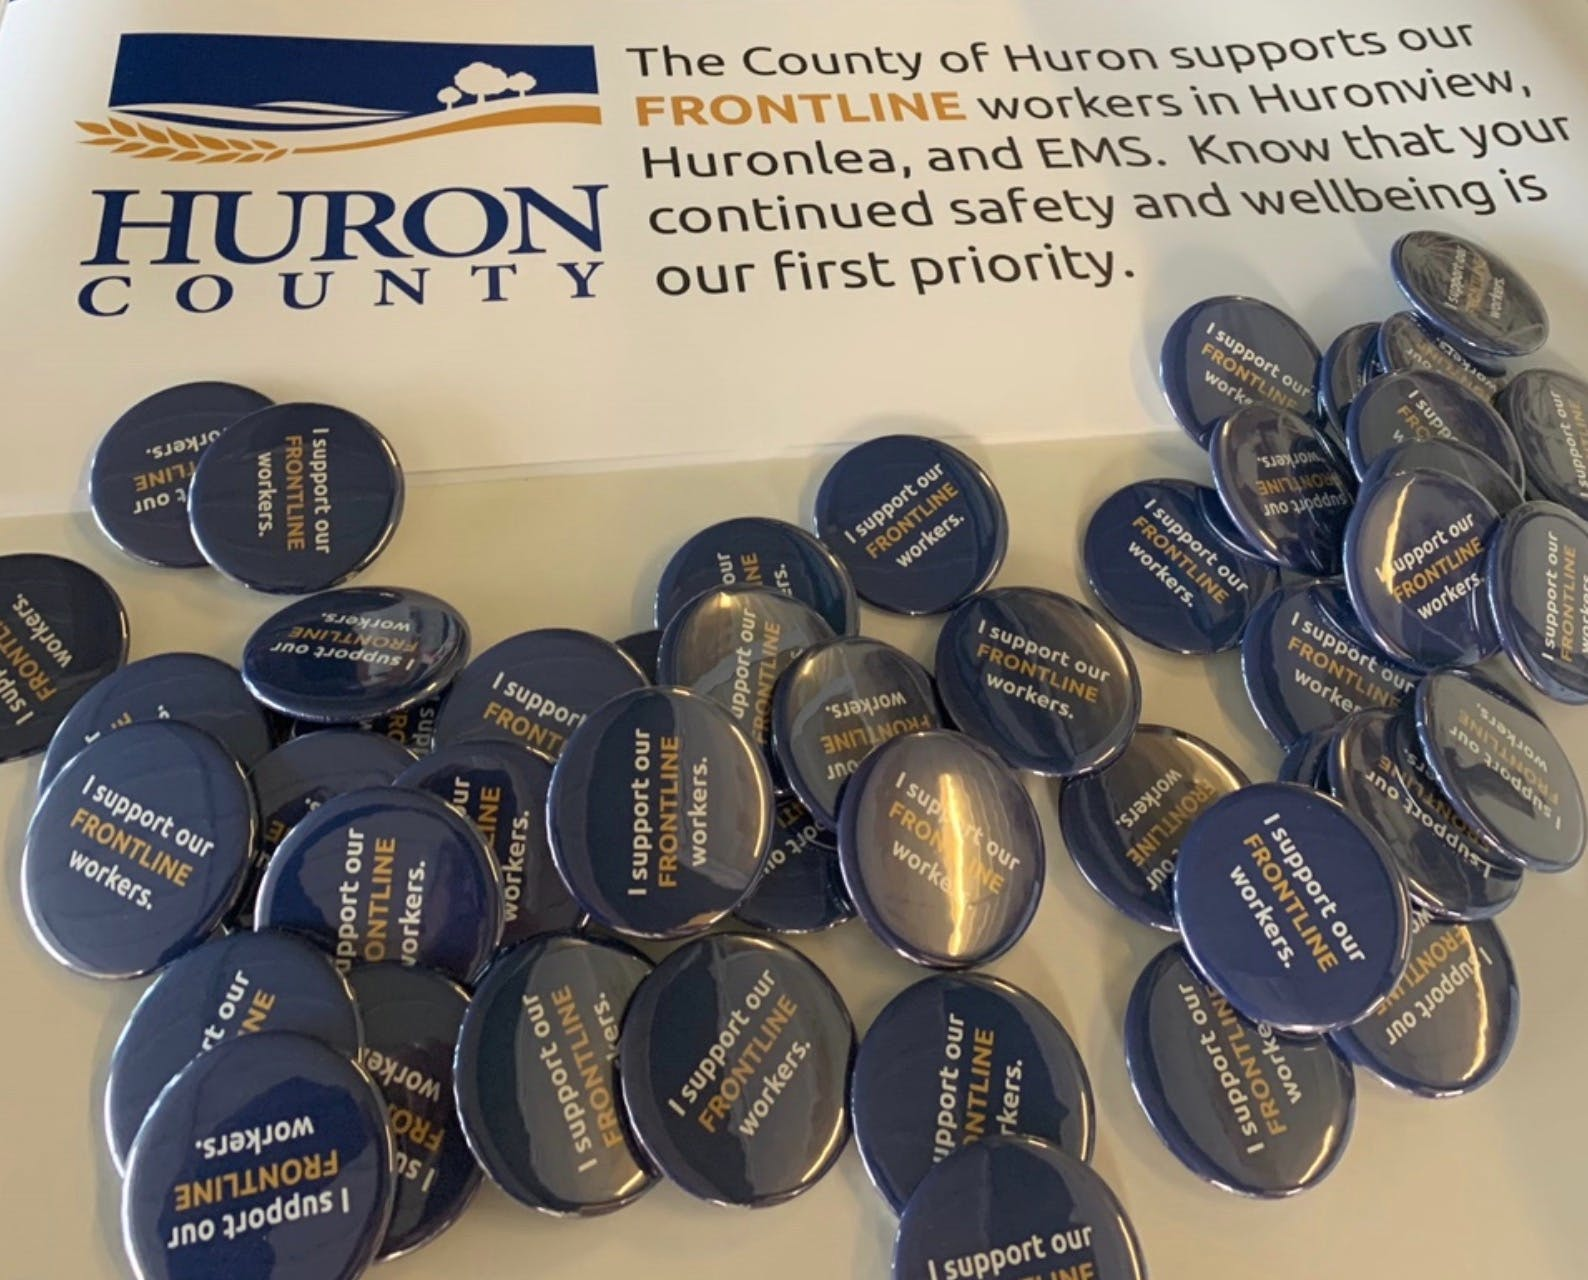 Buttons for Huron County